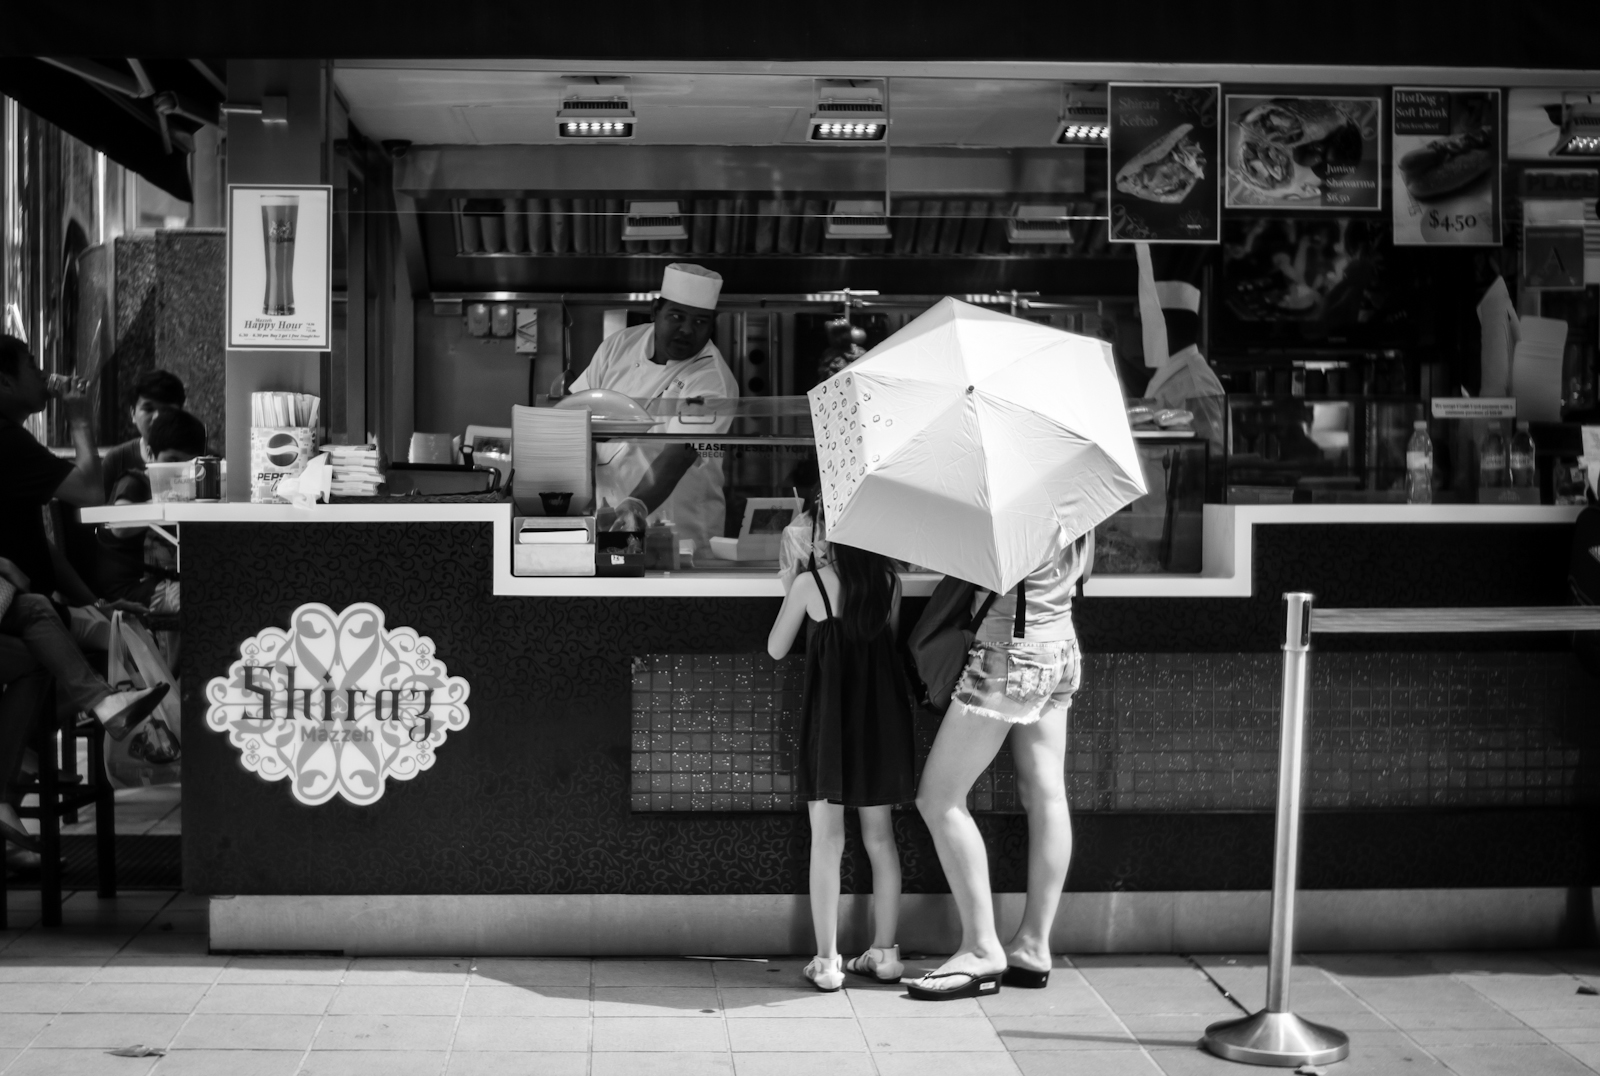 Mother and daughter standing beneath their umbrella while ordering food